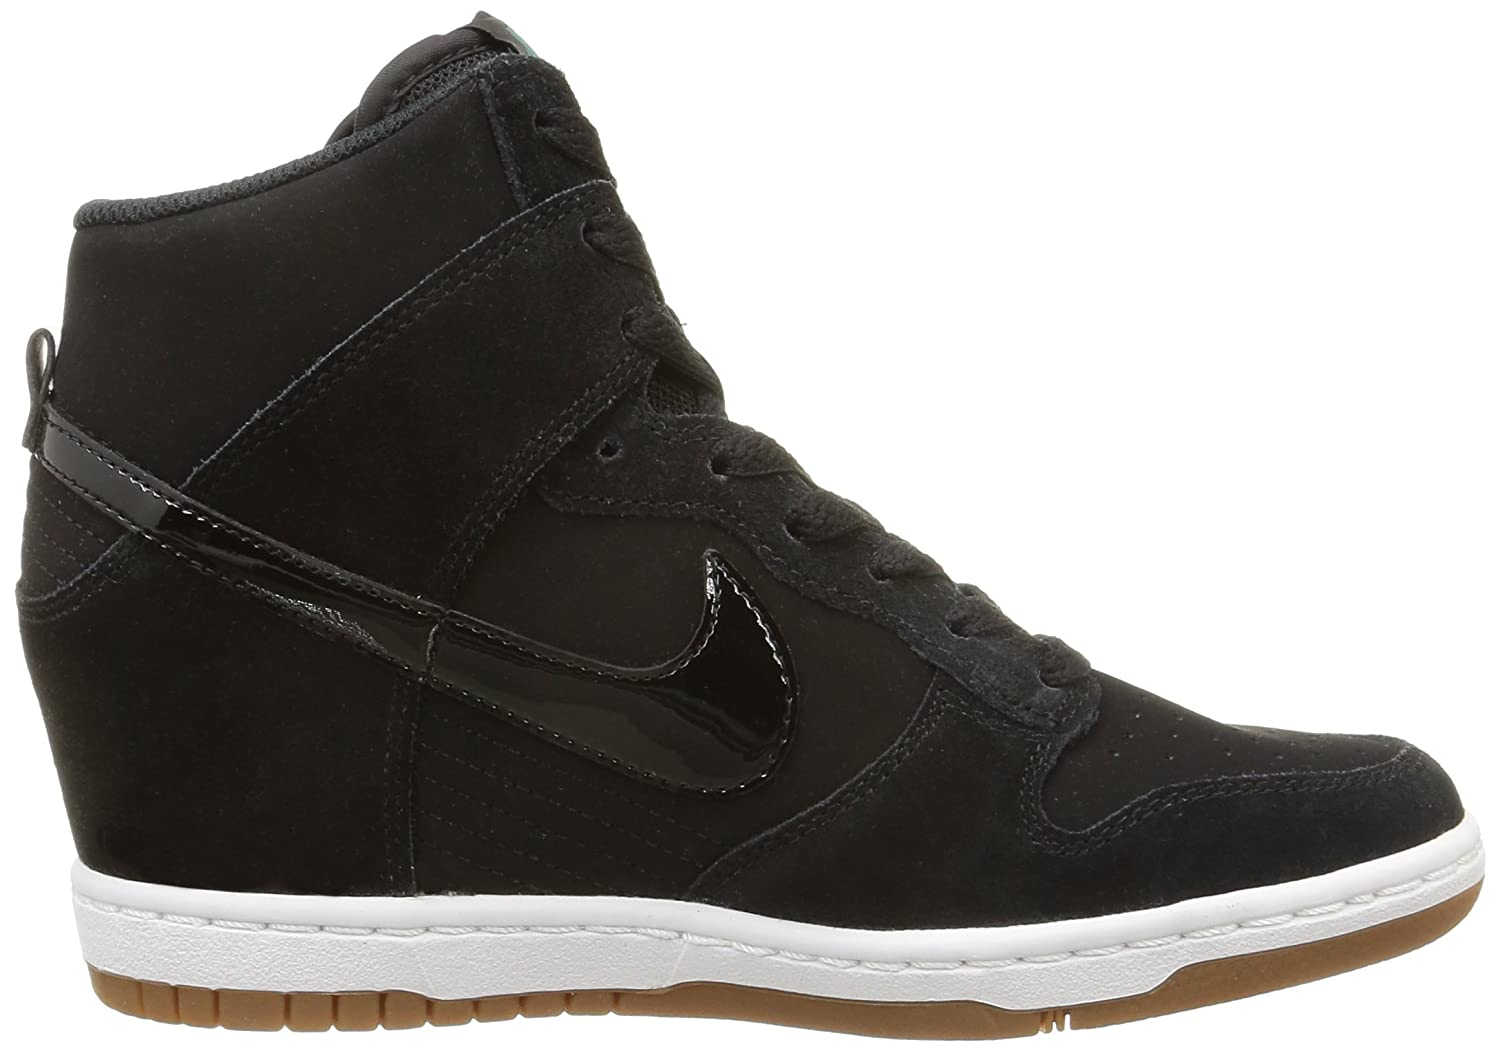 new product a9745 e1543 Amazon.com   Nike Dunk Sky Hi Essential 644877-011 Black Sail Gum Hidden Wedge  Women s Shoes (5.5 B(M) US)   Basketball